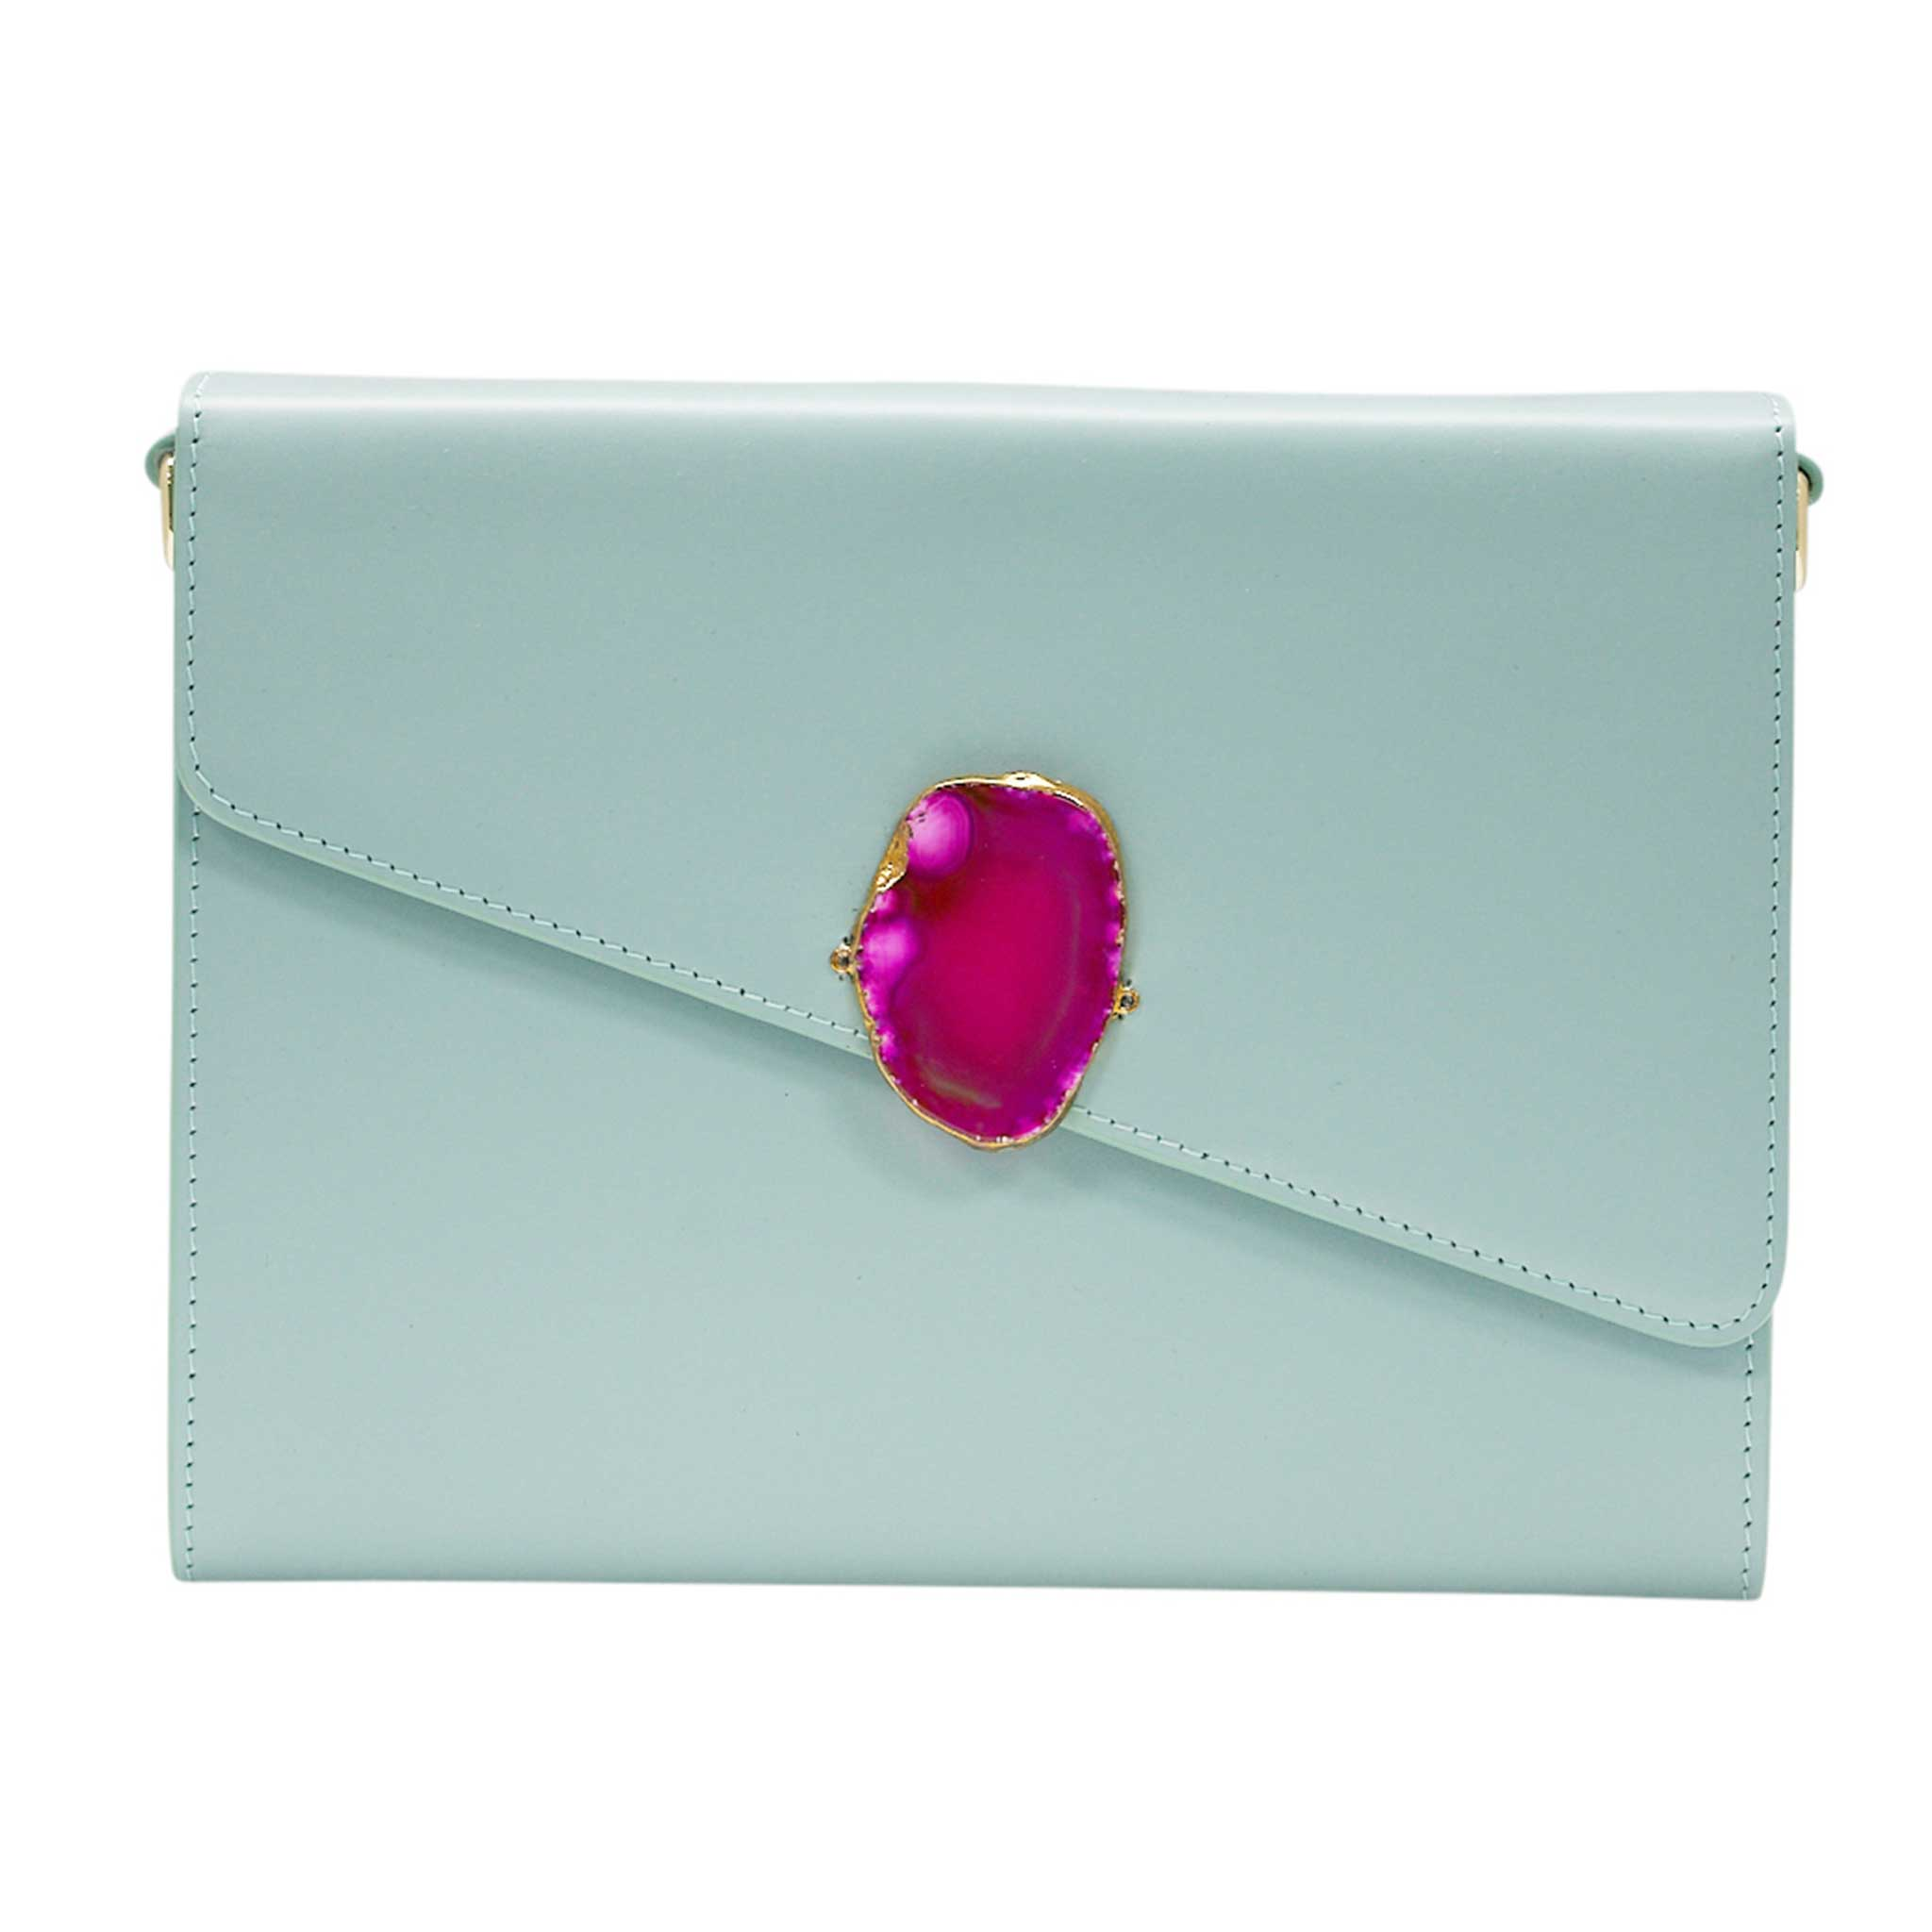 LOVED BAG - MOONSTONE WHITE LEATHER WITH PINK AGATE - 1.02.005.055